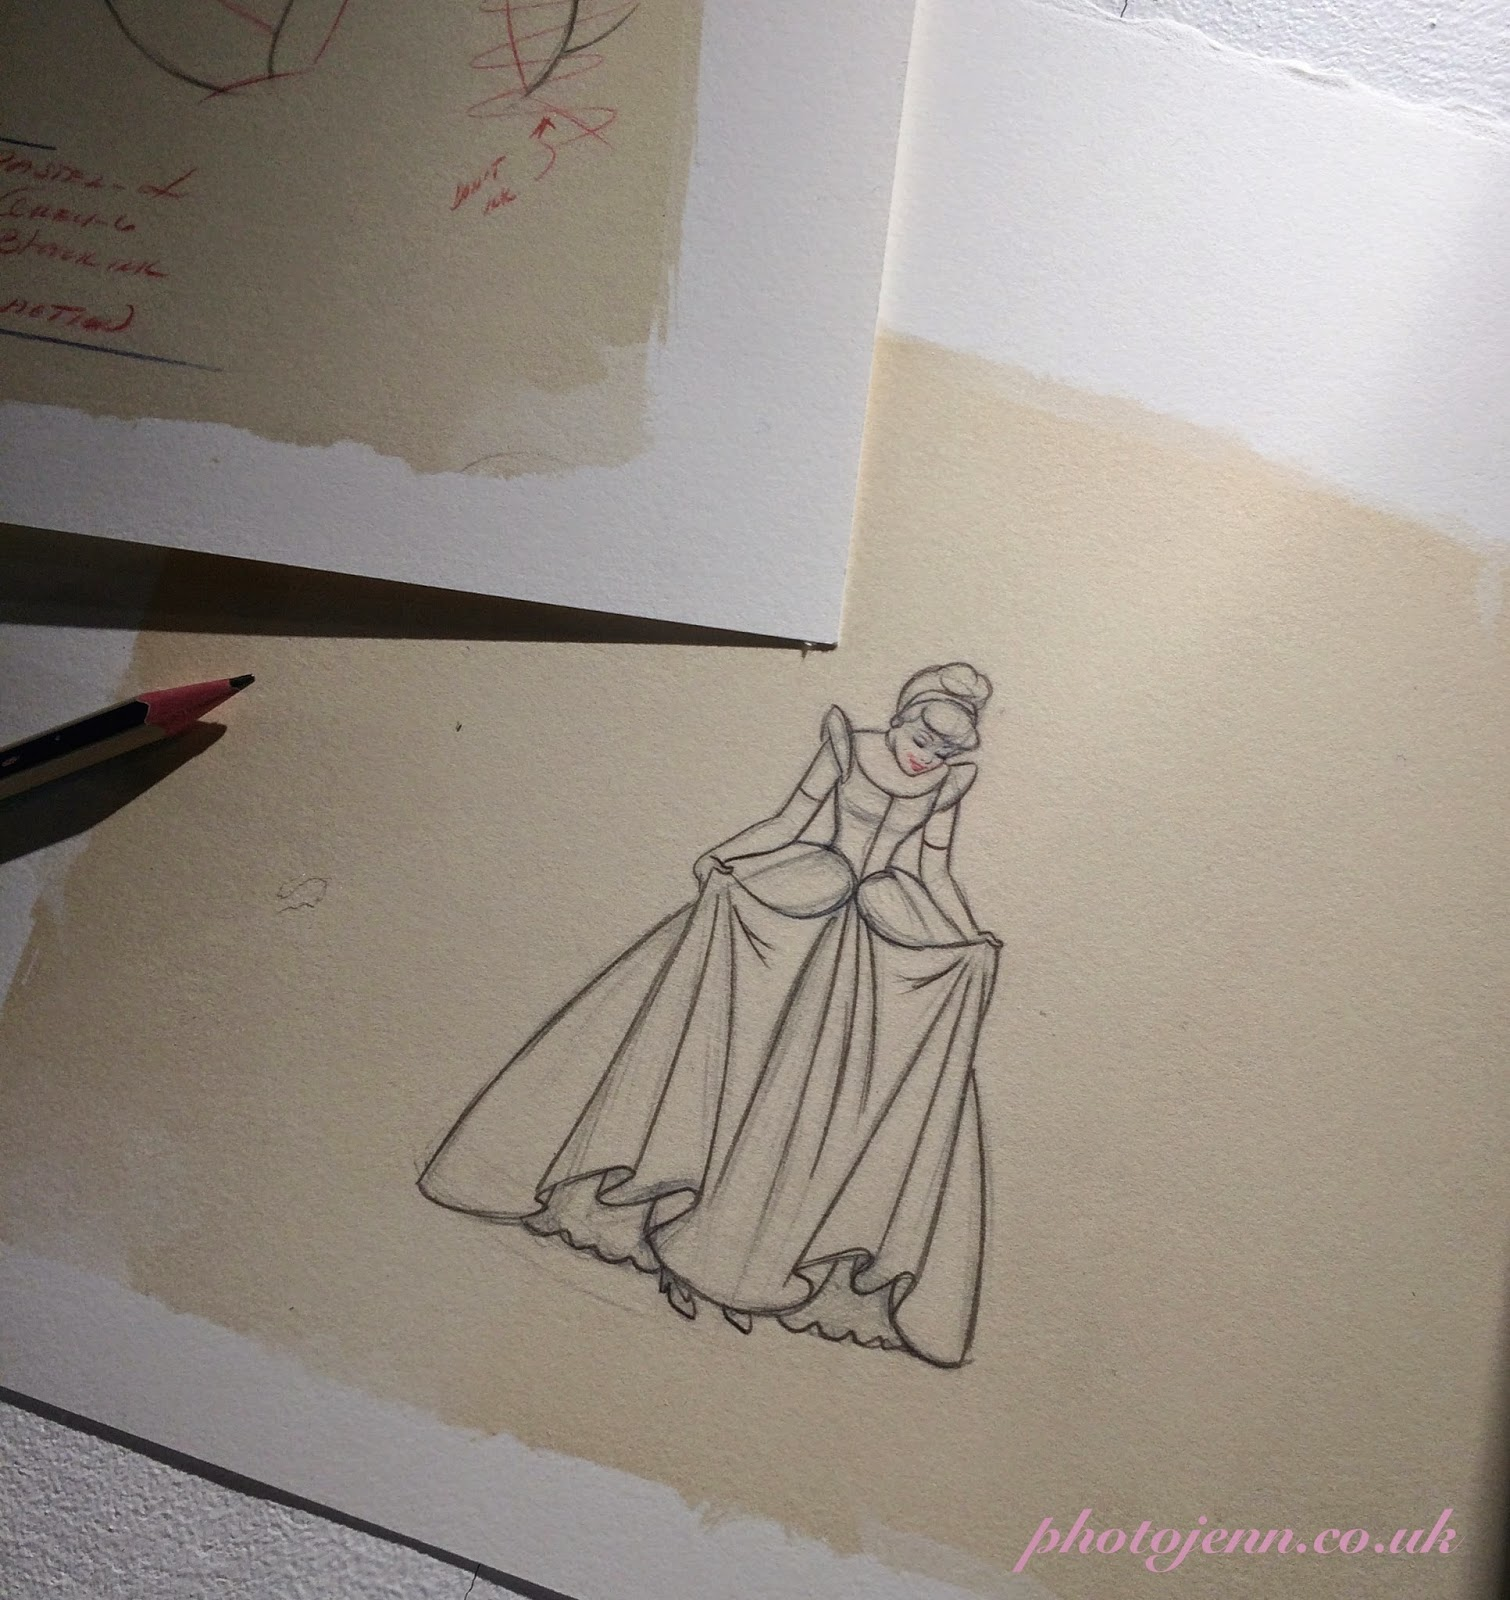 Cinderella-exhibition-disney-film-original-sketch